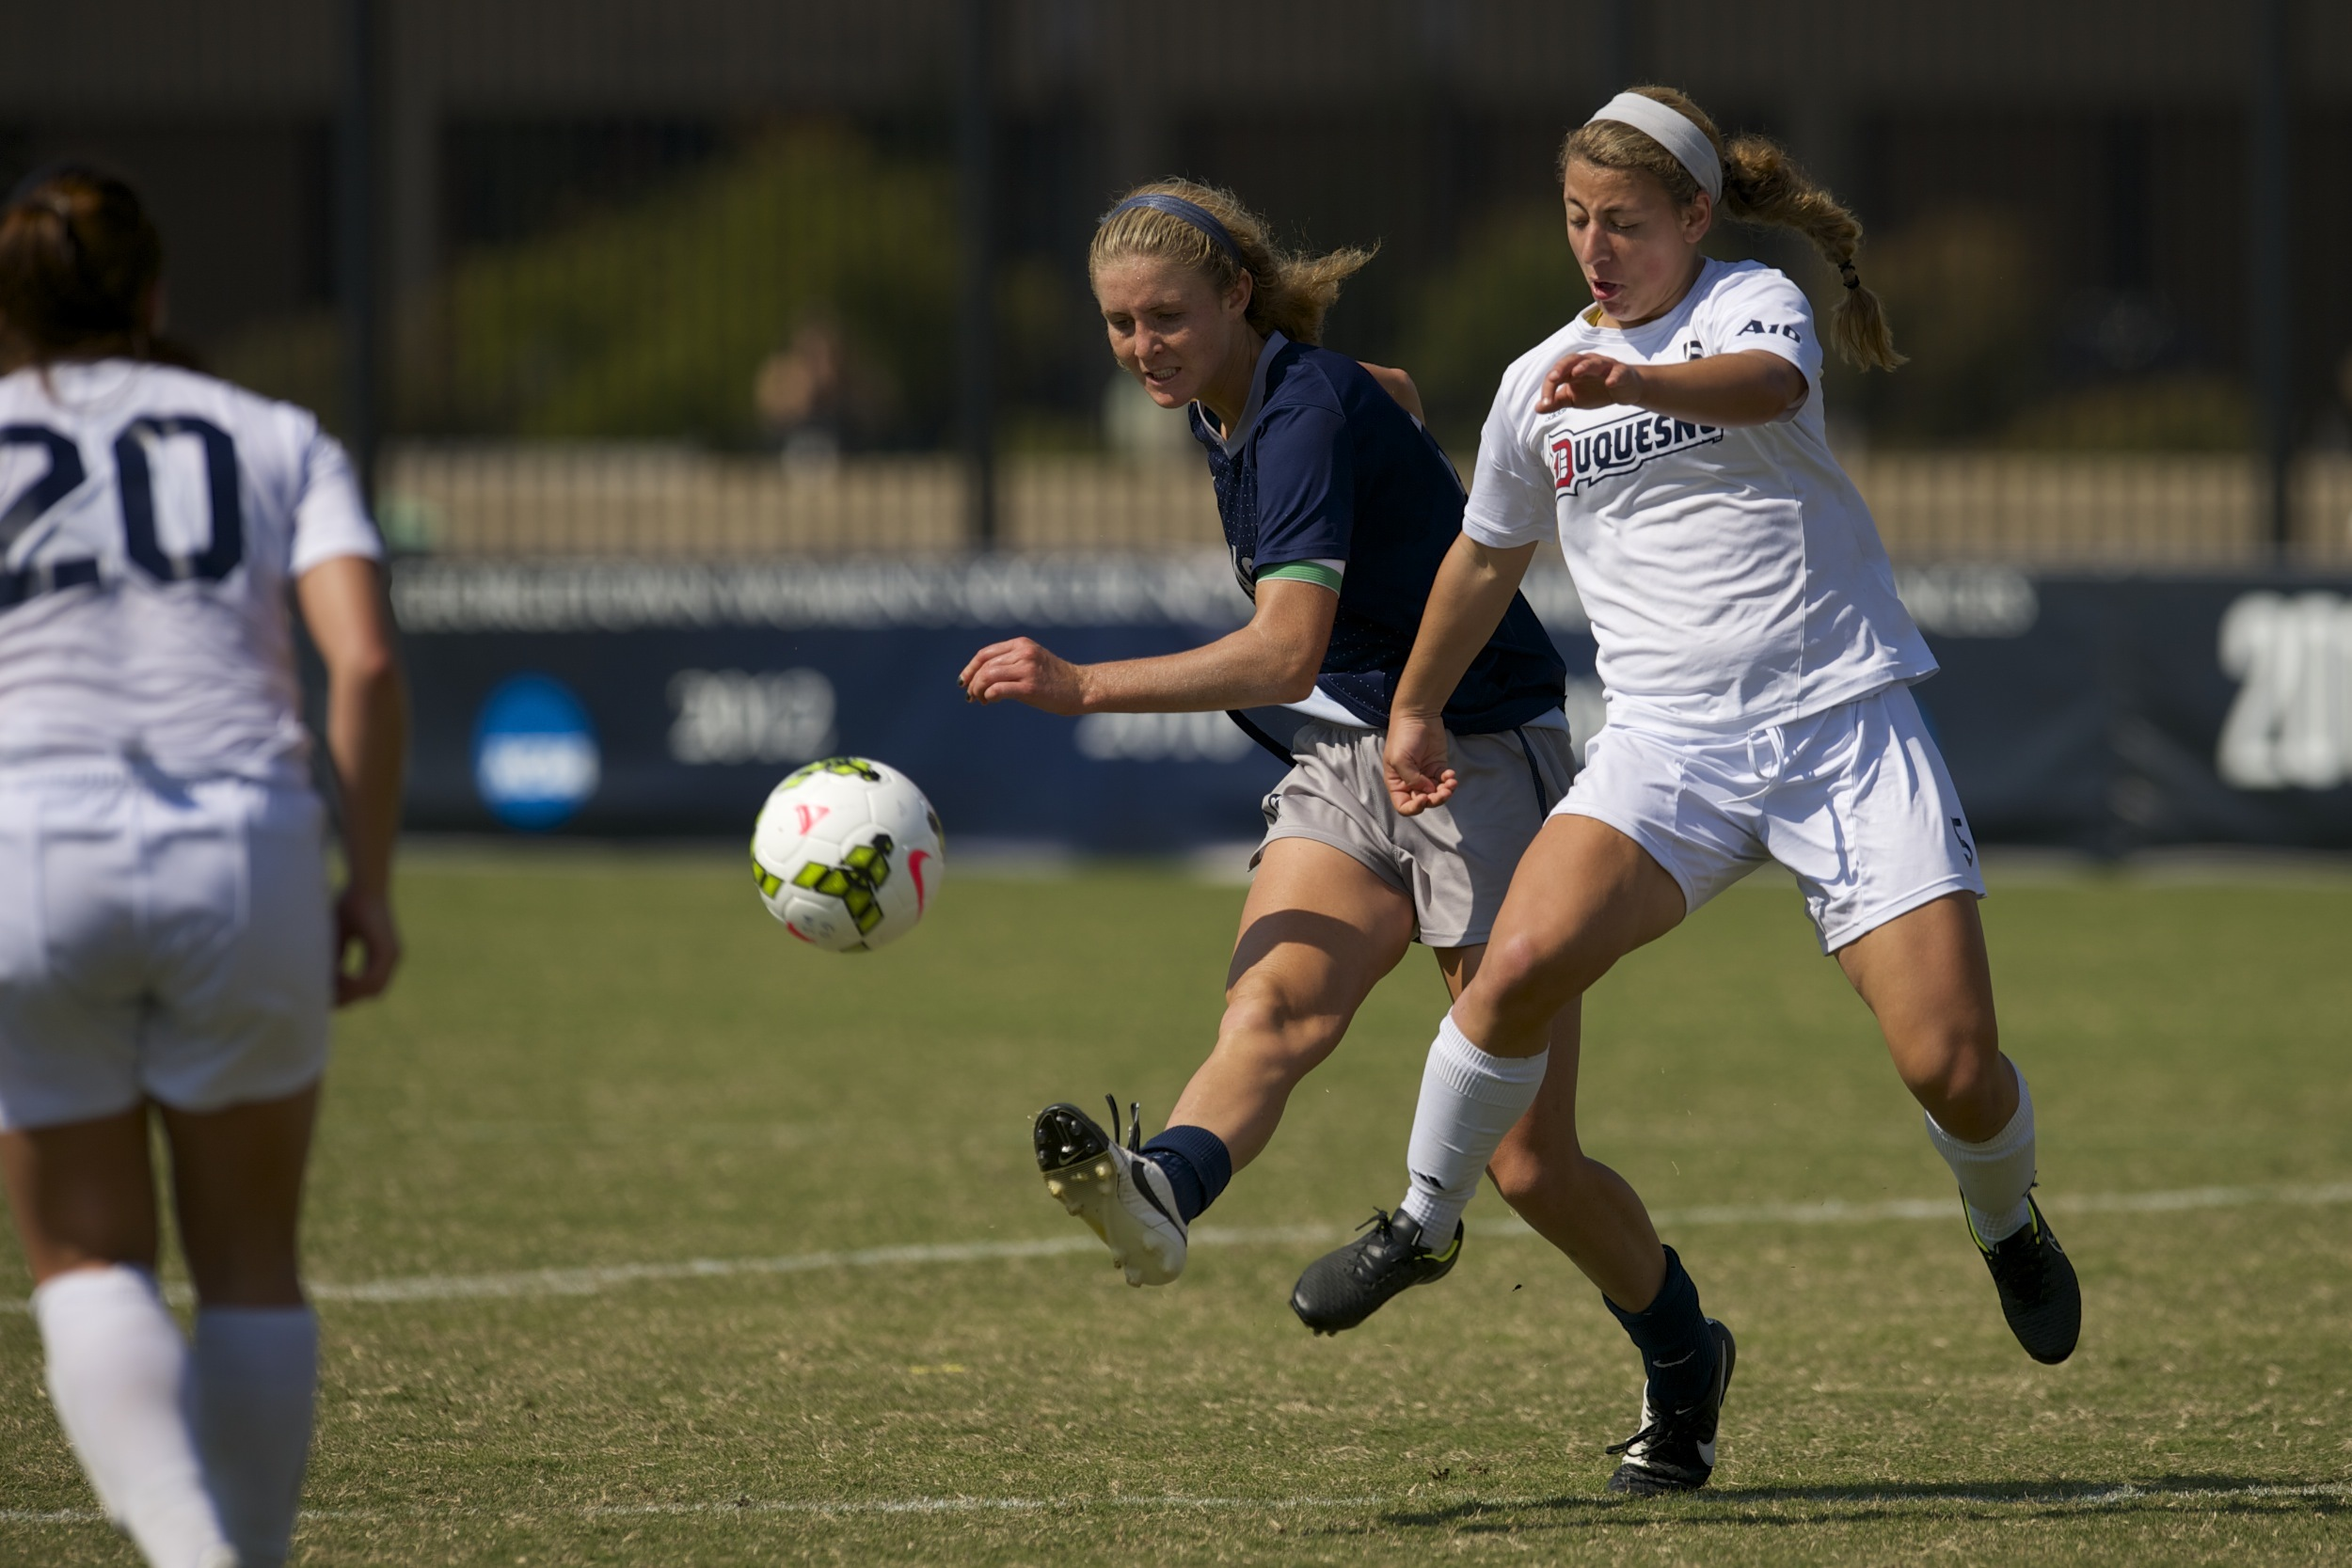 The Georgetown University women's soccer team played its final exhibition game before the start of the 2015 regular season on Saturday evening, playing to a scoreless draw at the University of Richmond.